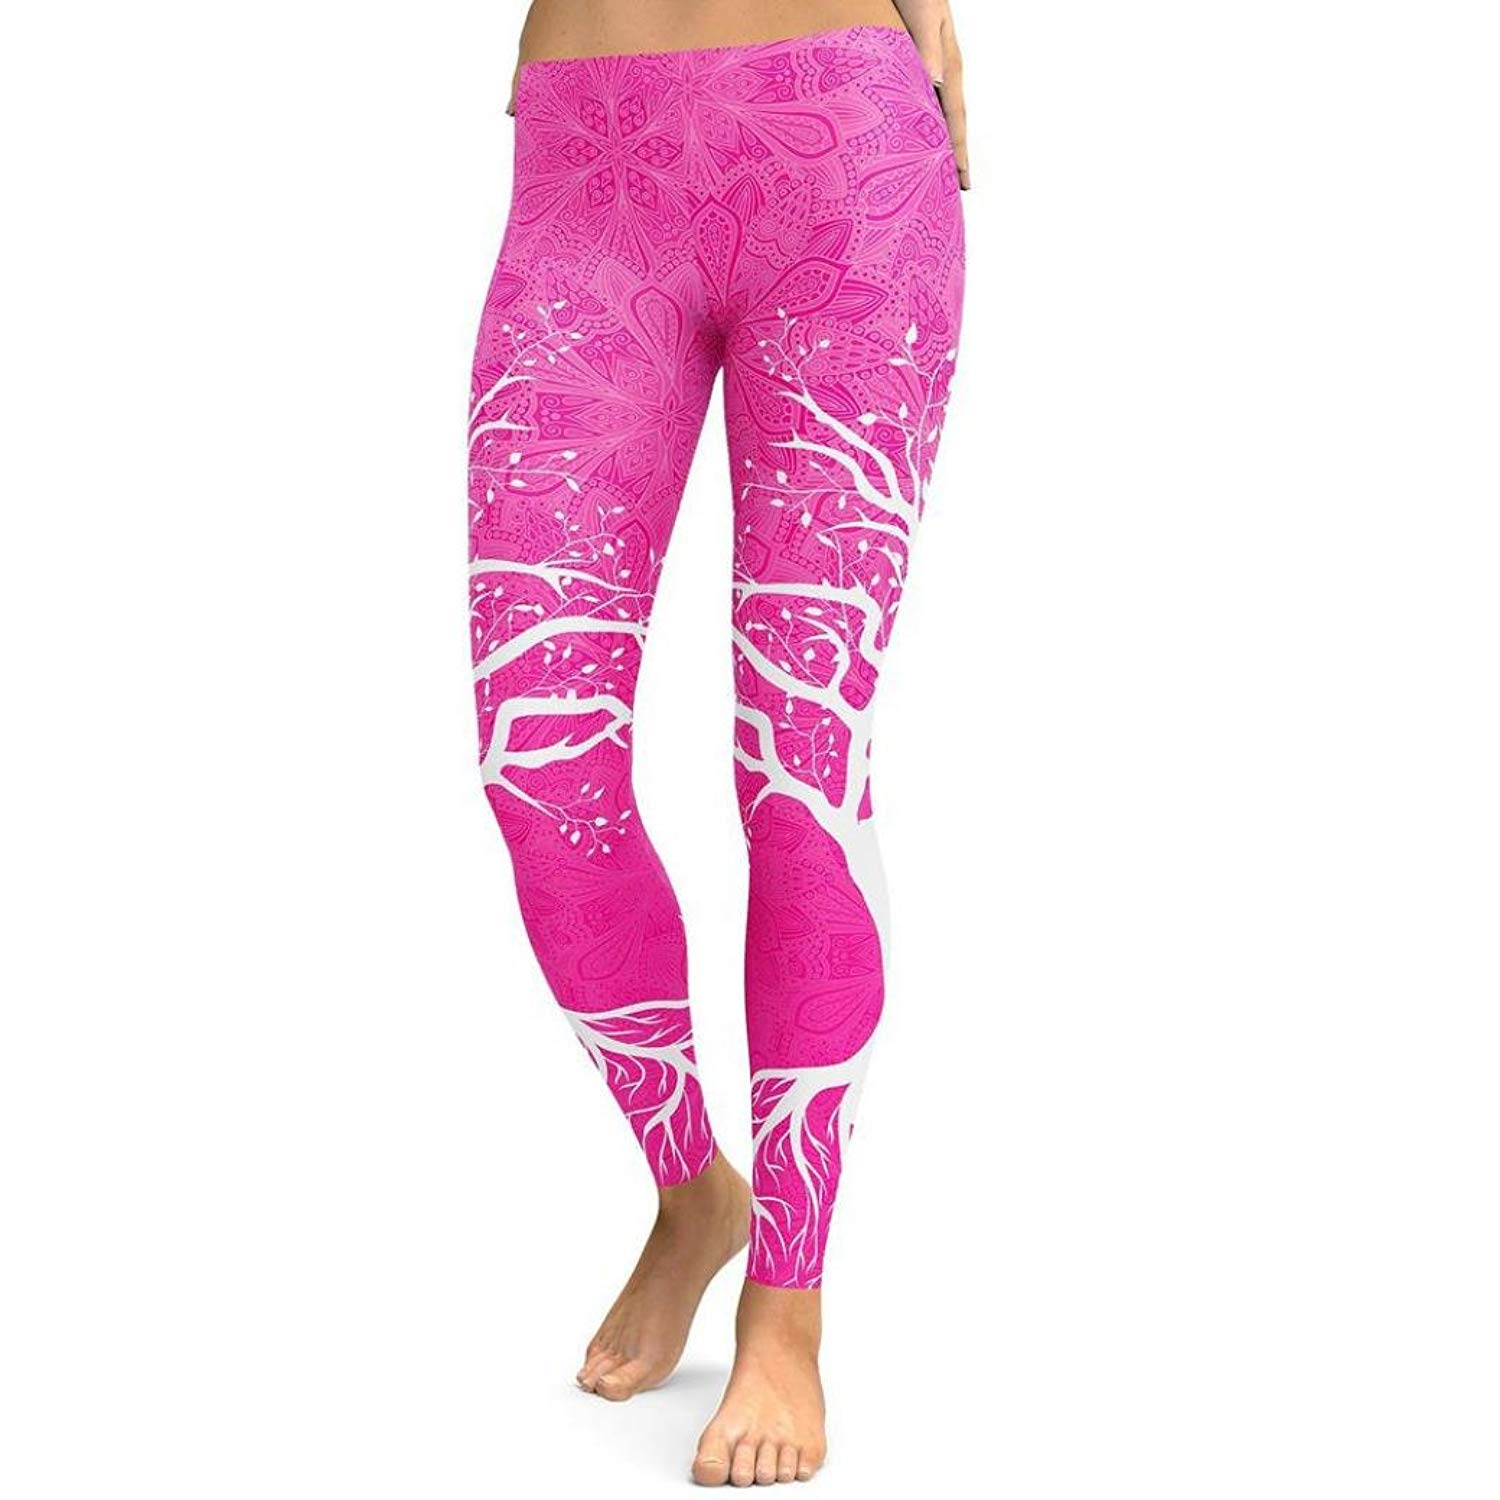 d3be1f8b742c0 Mnyycxen Women Floral Printed High Waist Skinny Stretch Yoga Fitness  Leggings Running Activewear Gym Trousers Pants